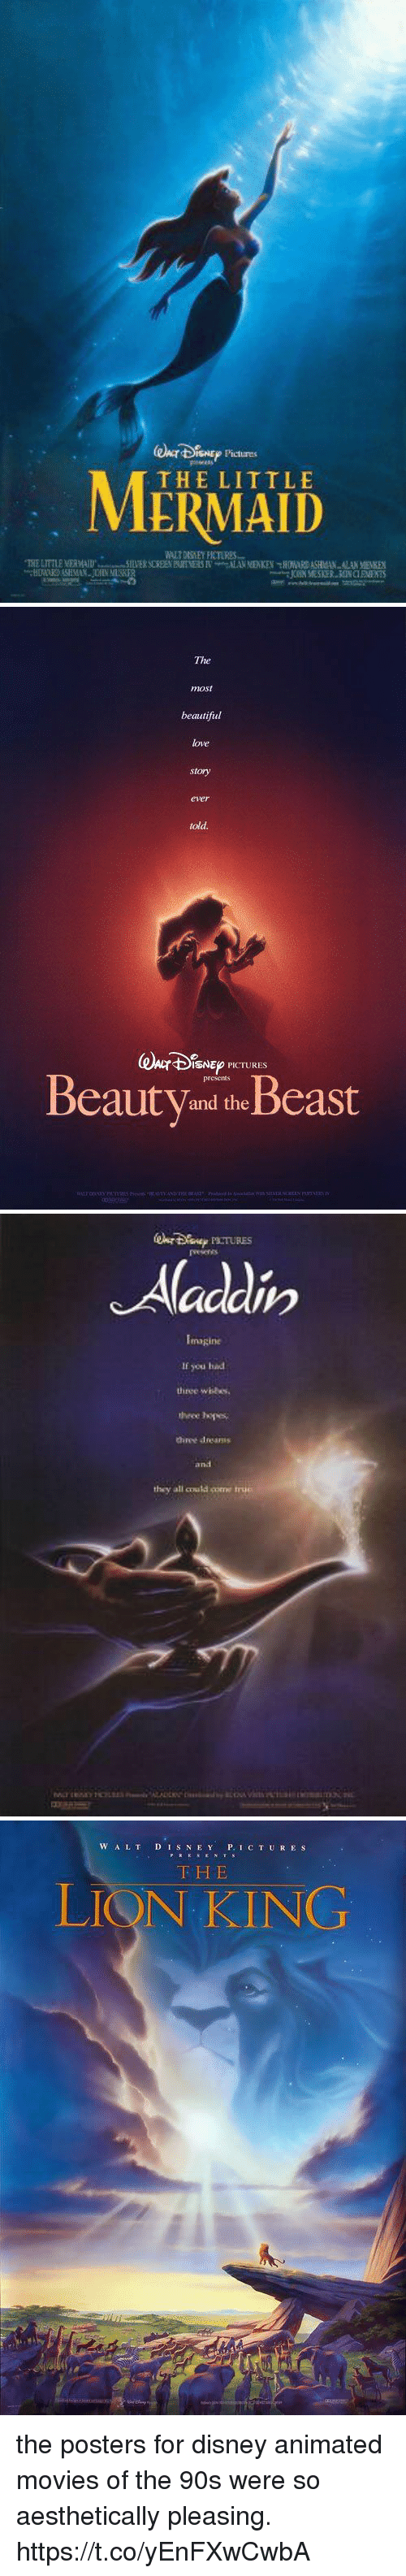 Beautiful, Disney, and Love: Pictures  THE LITTLE   The  most  beautiful  love  story  ever  told  @kr4%Nep PK TURES  BeautV and theBeast   If you hid  three wblbes  theee ys  they all could come   W A LTD IS N E Y P. IC T UR ES  F H E  LIQN KING the posters for disney animated movies of the 90s were so aesthetically pleasing. https://t.co/yEnFXwCwbA